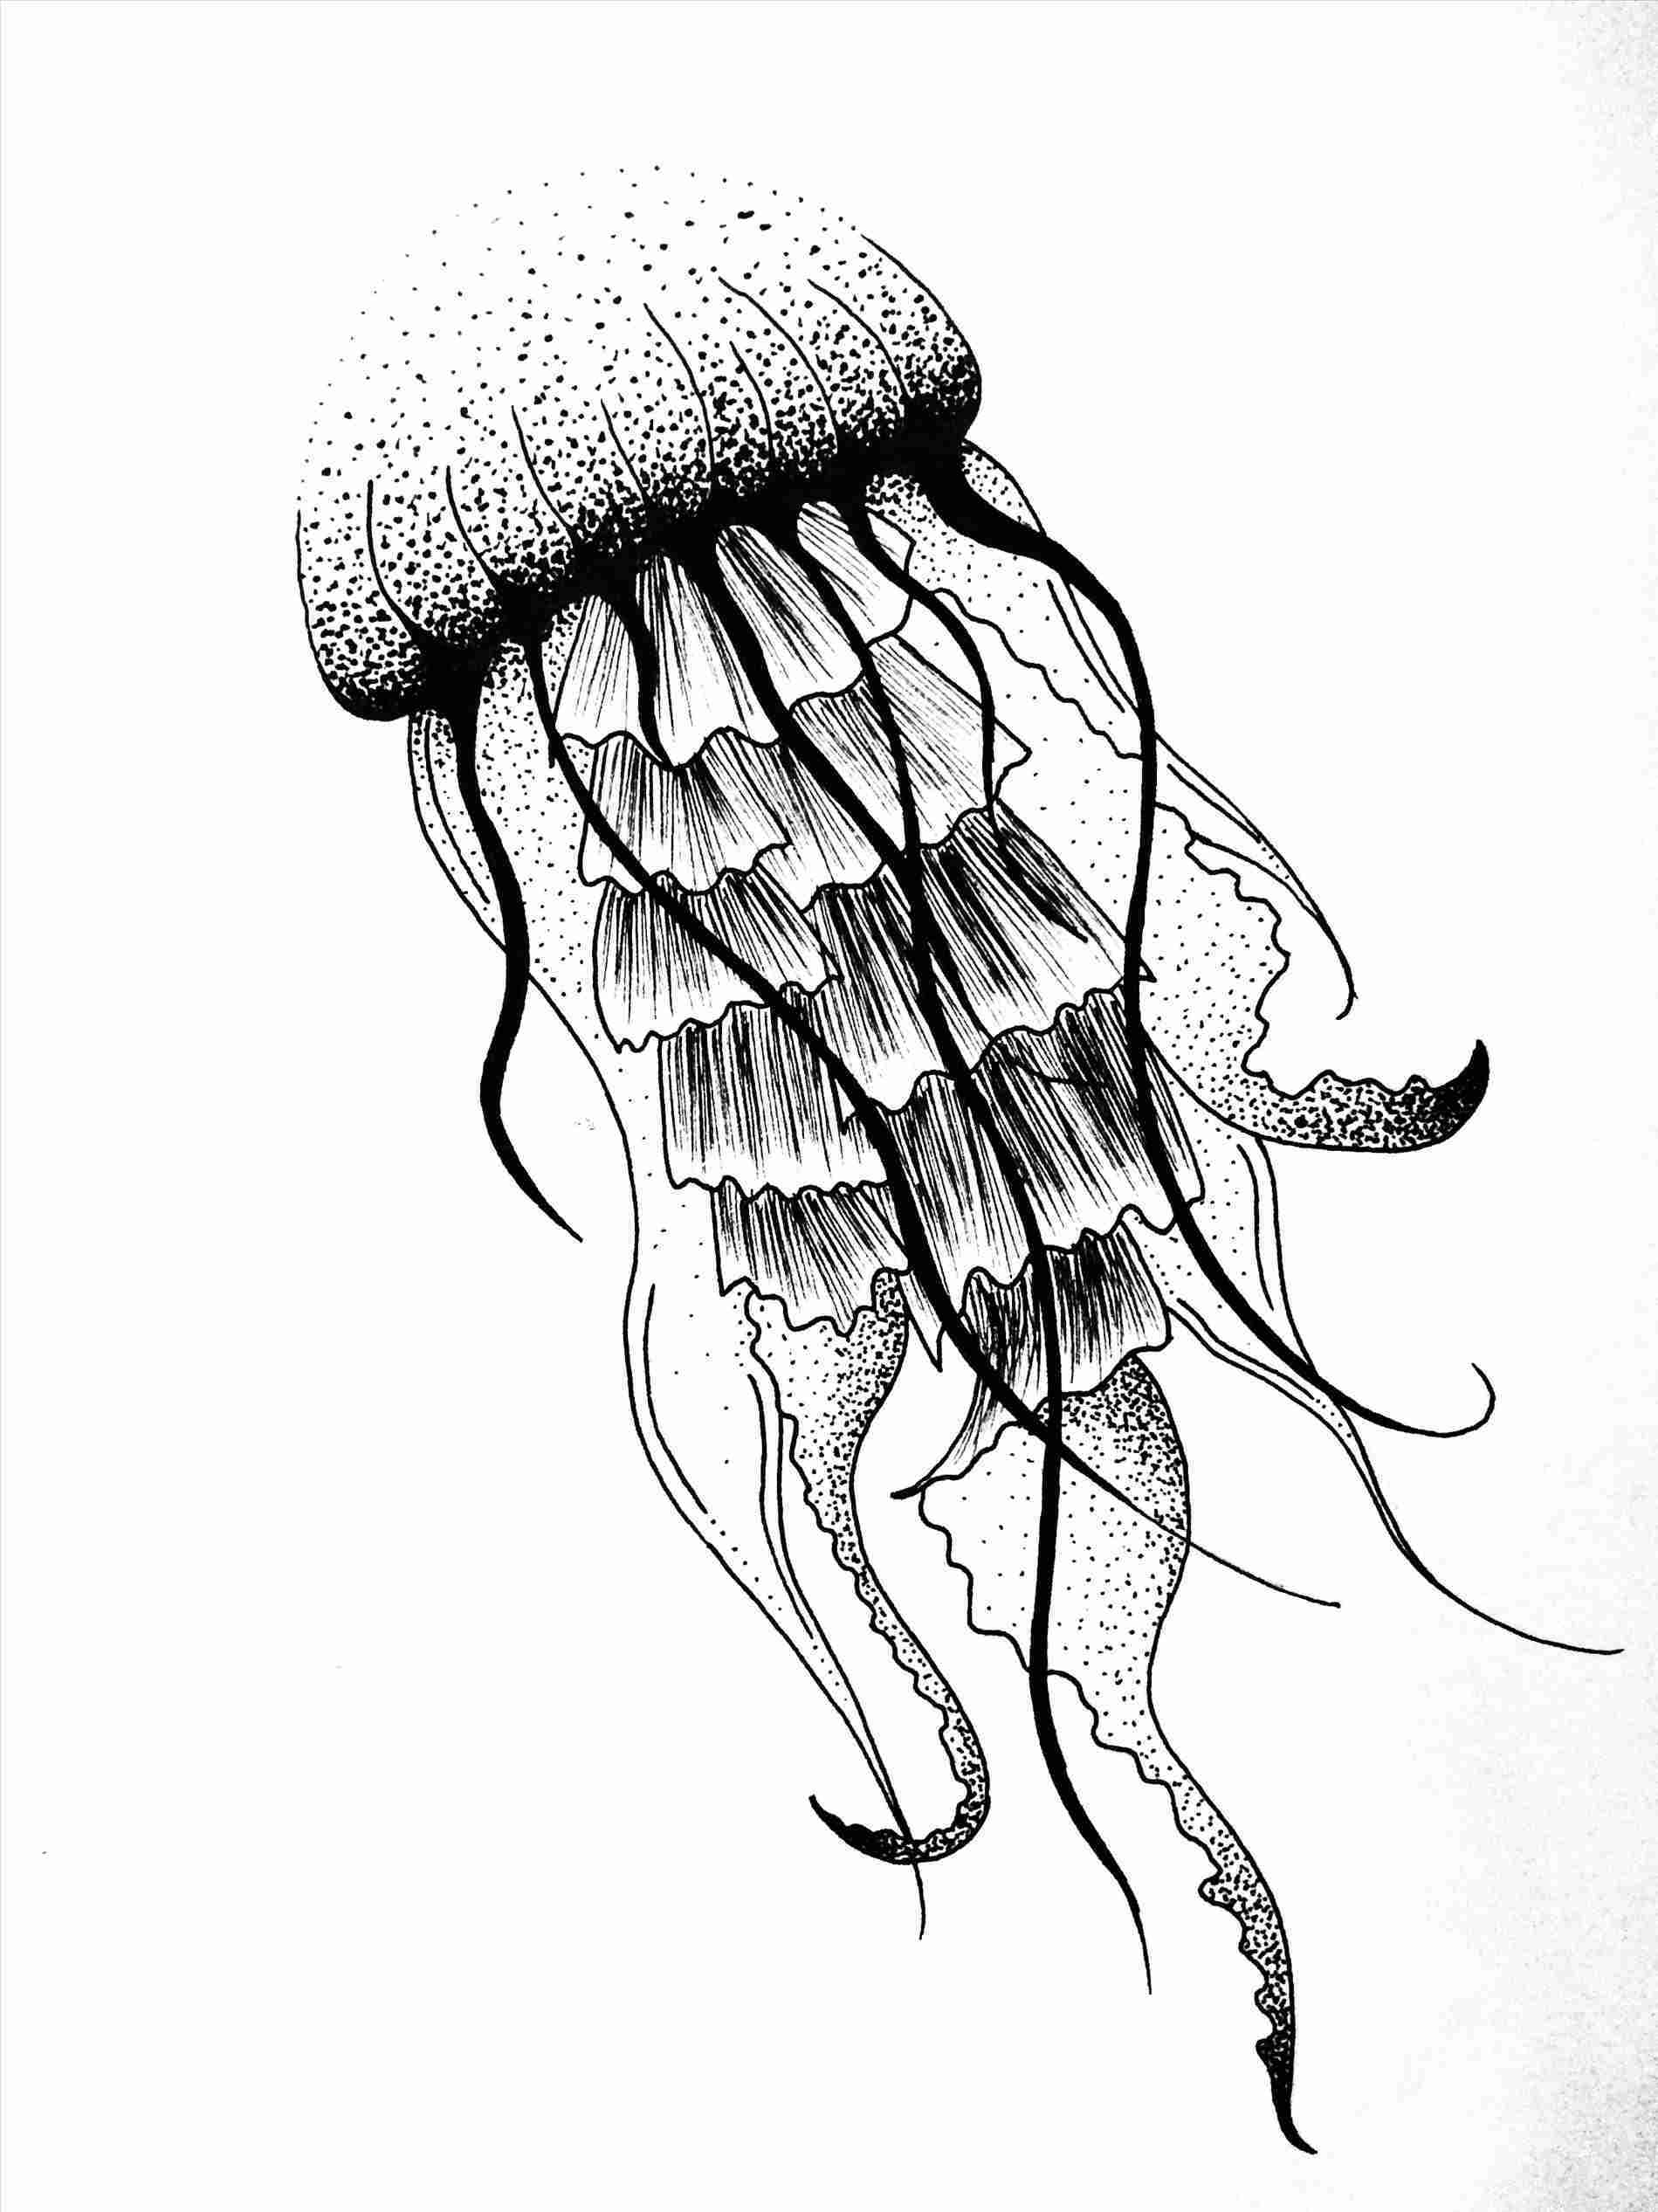 how to draw jellyfish jellyfish drawing made by linda den hollander kwallen jellyfish how draw to